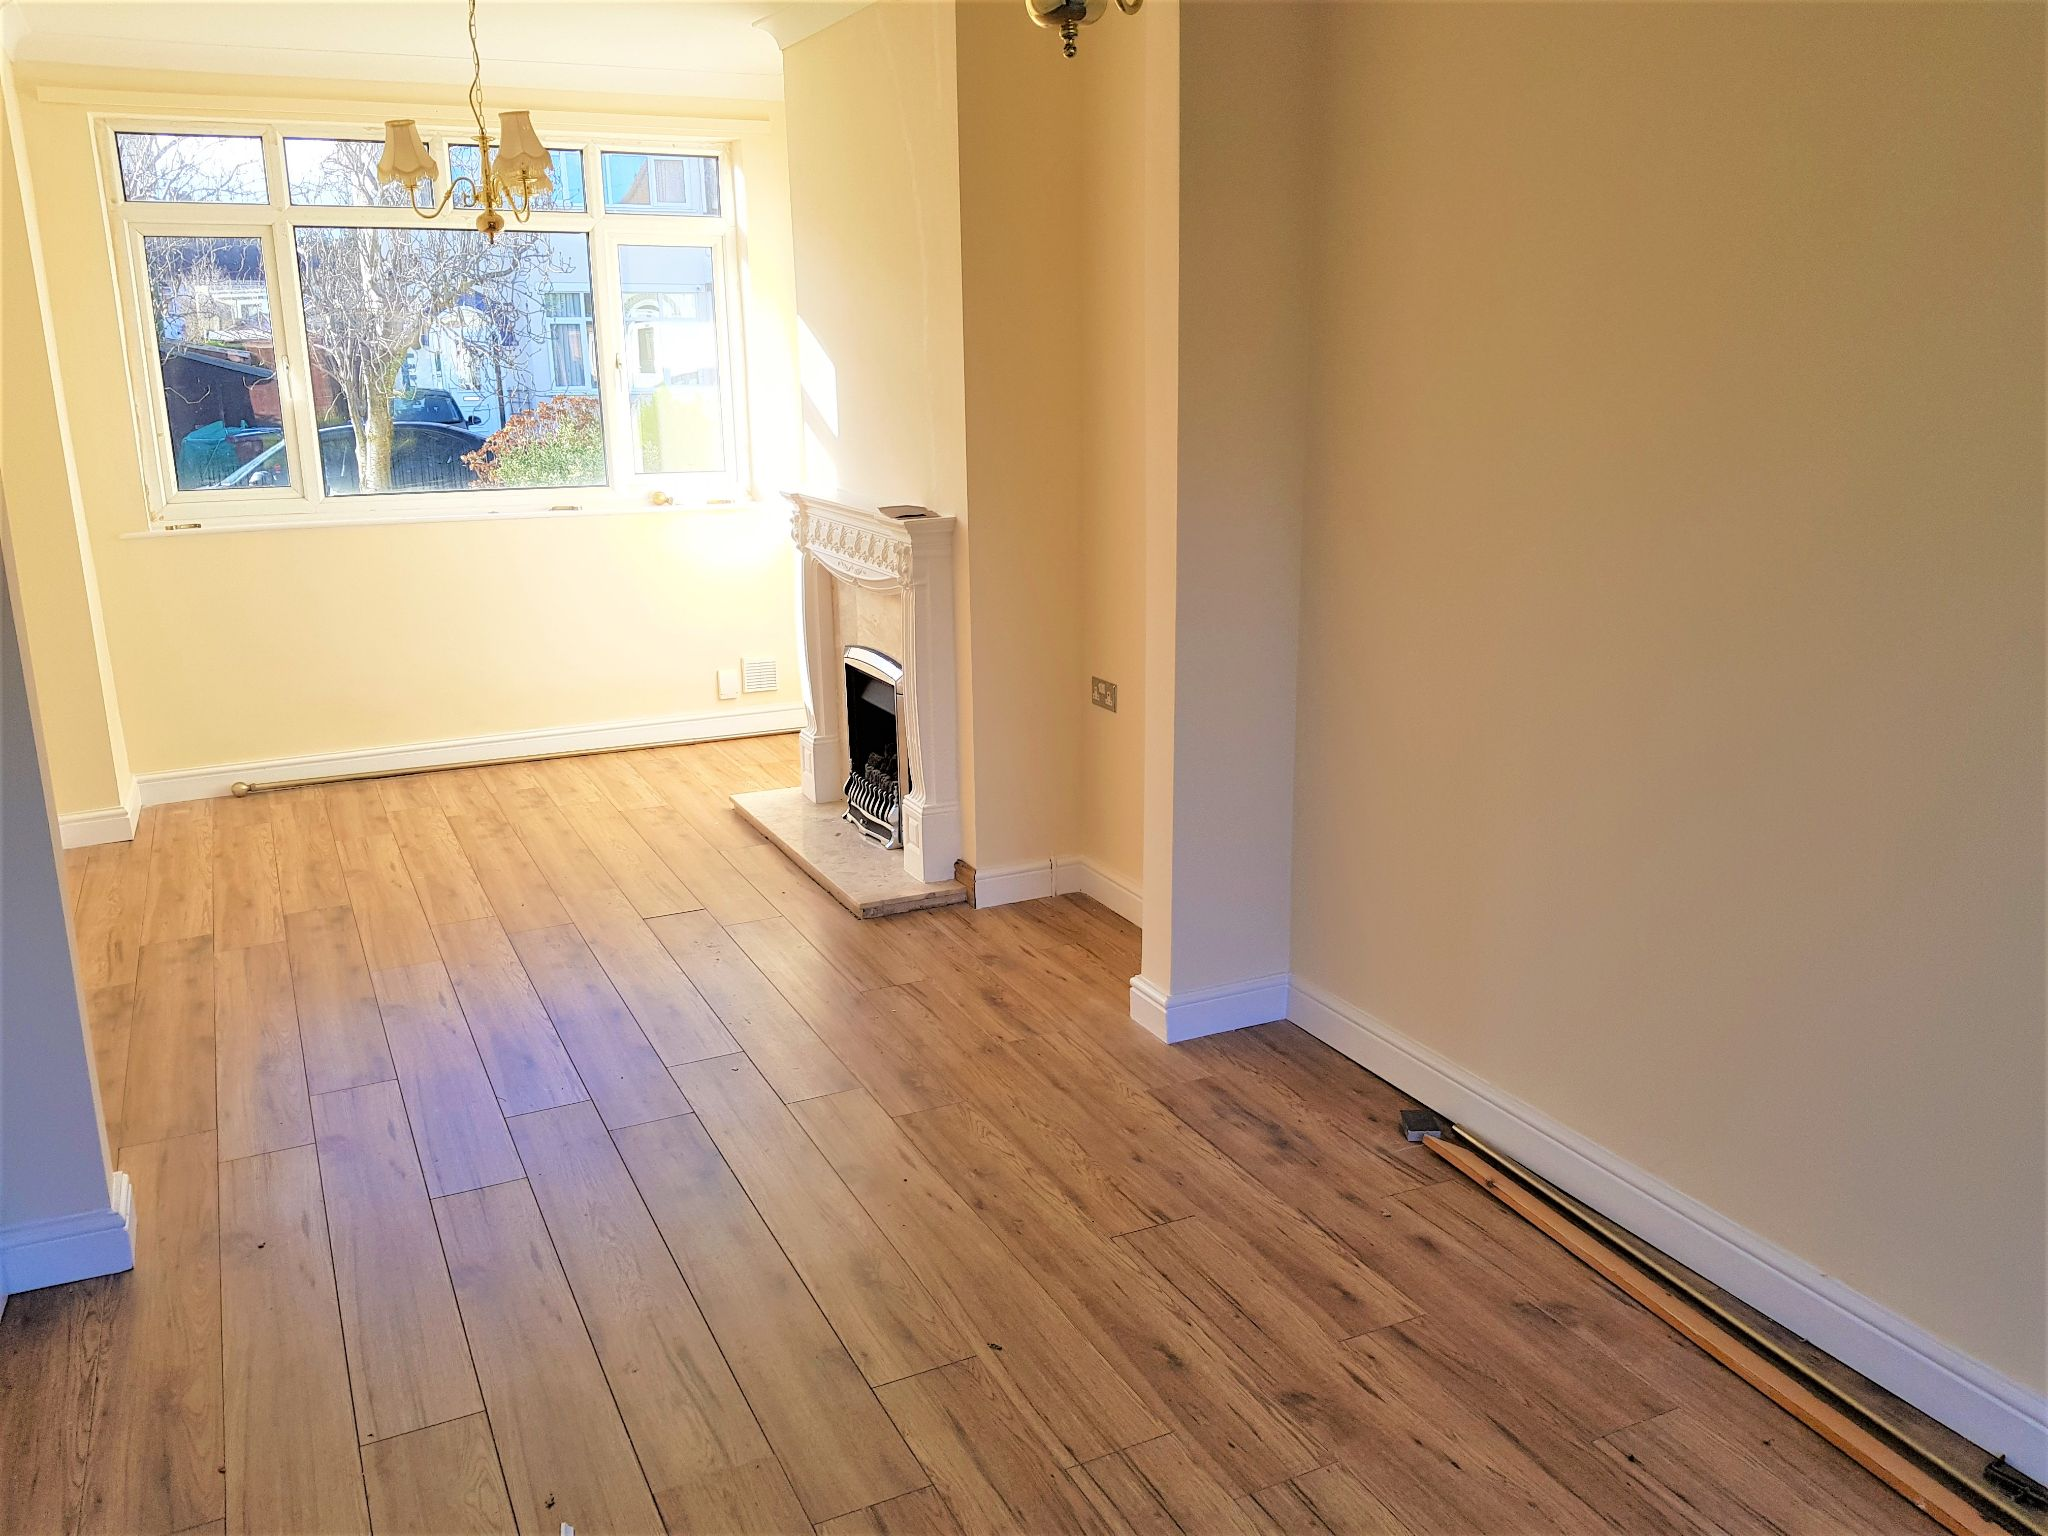 4 Bedroom Semi-detached House To Rent - Photograph 3